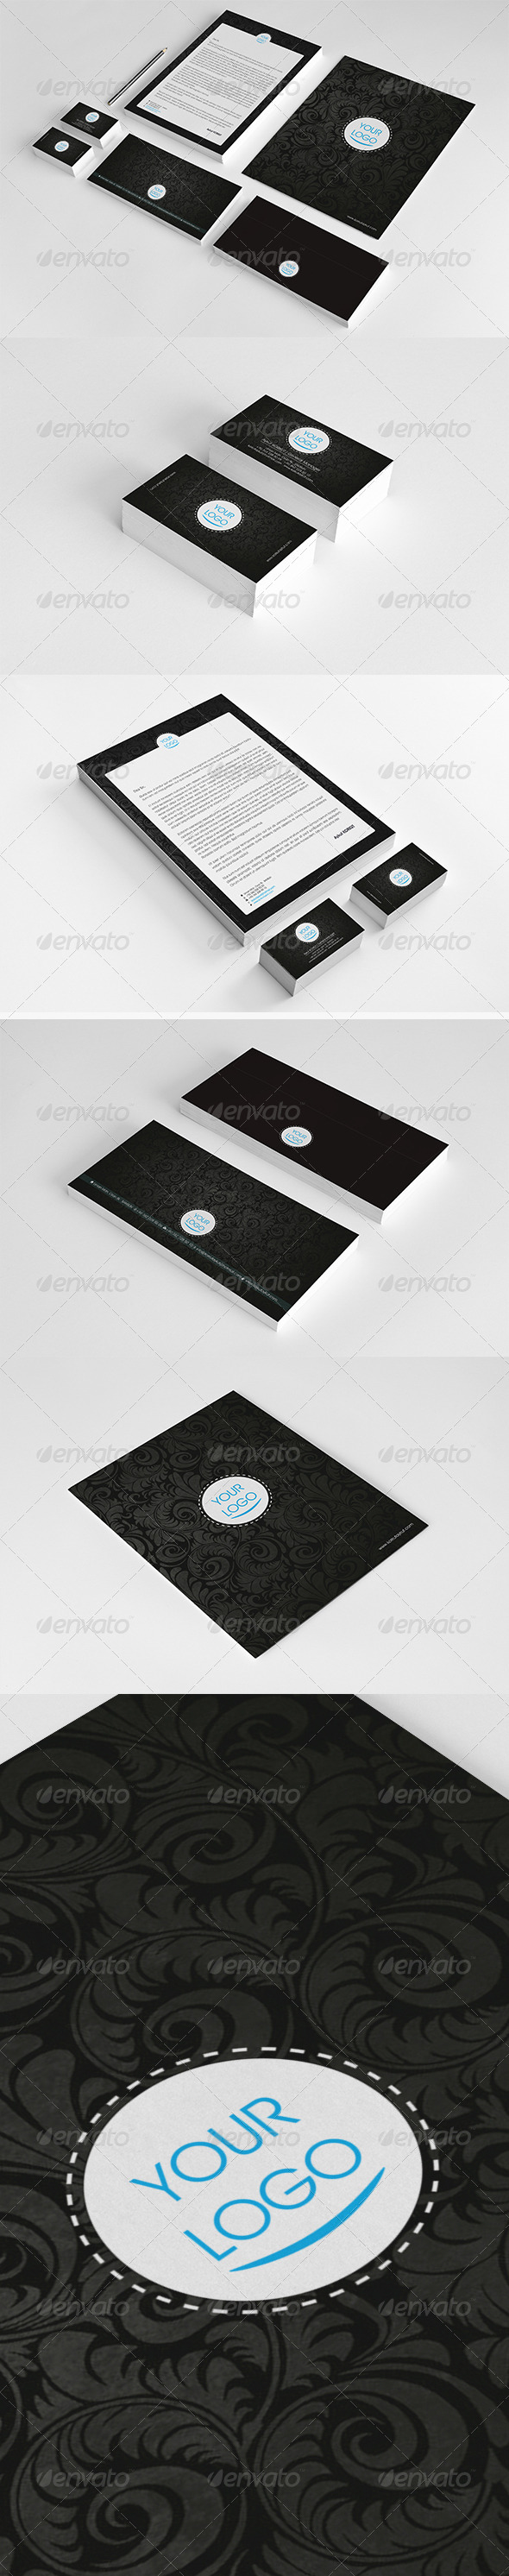 Colin Corporate Identity Package  - Stationery Print Templates